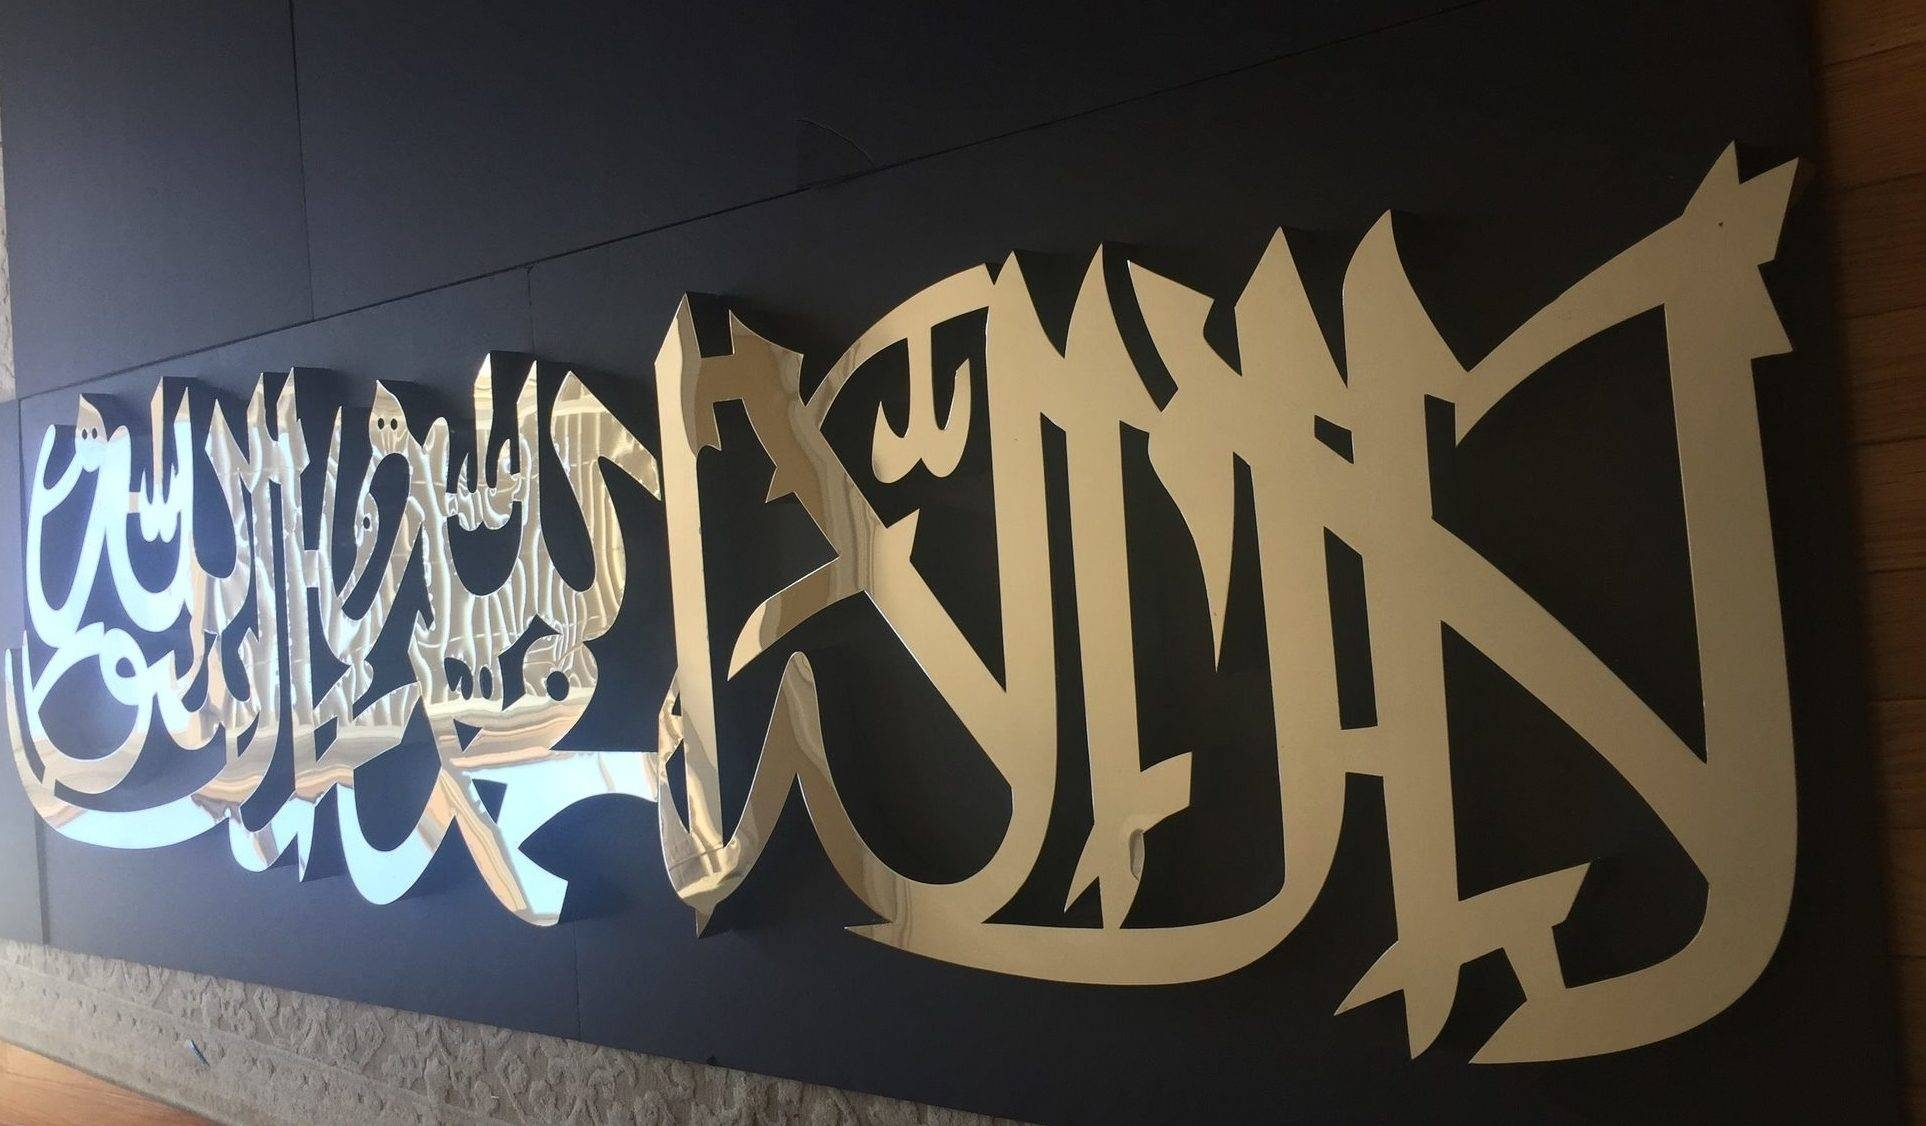 Shahada / Kalima Grand  Modern Islamic Wall Art Calligraphy Within Most Popular 3D Islamic Wall Art (View 18 of 20)